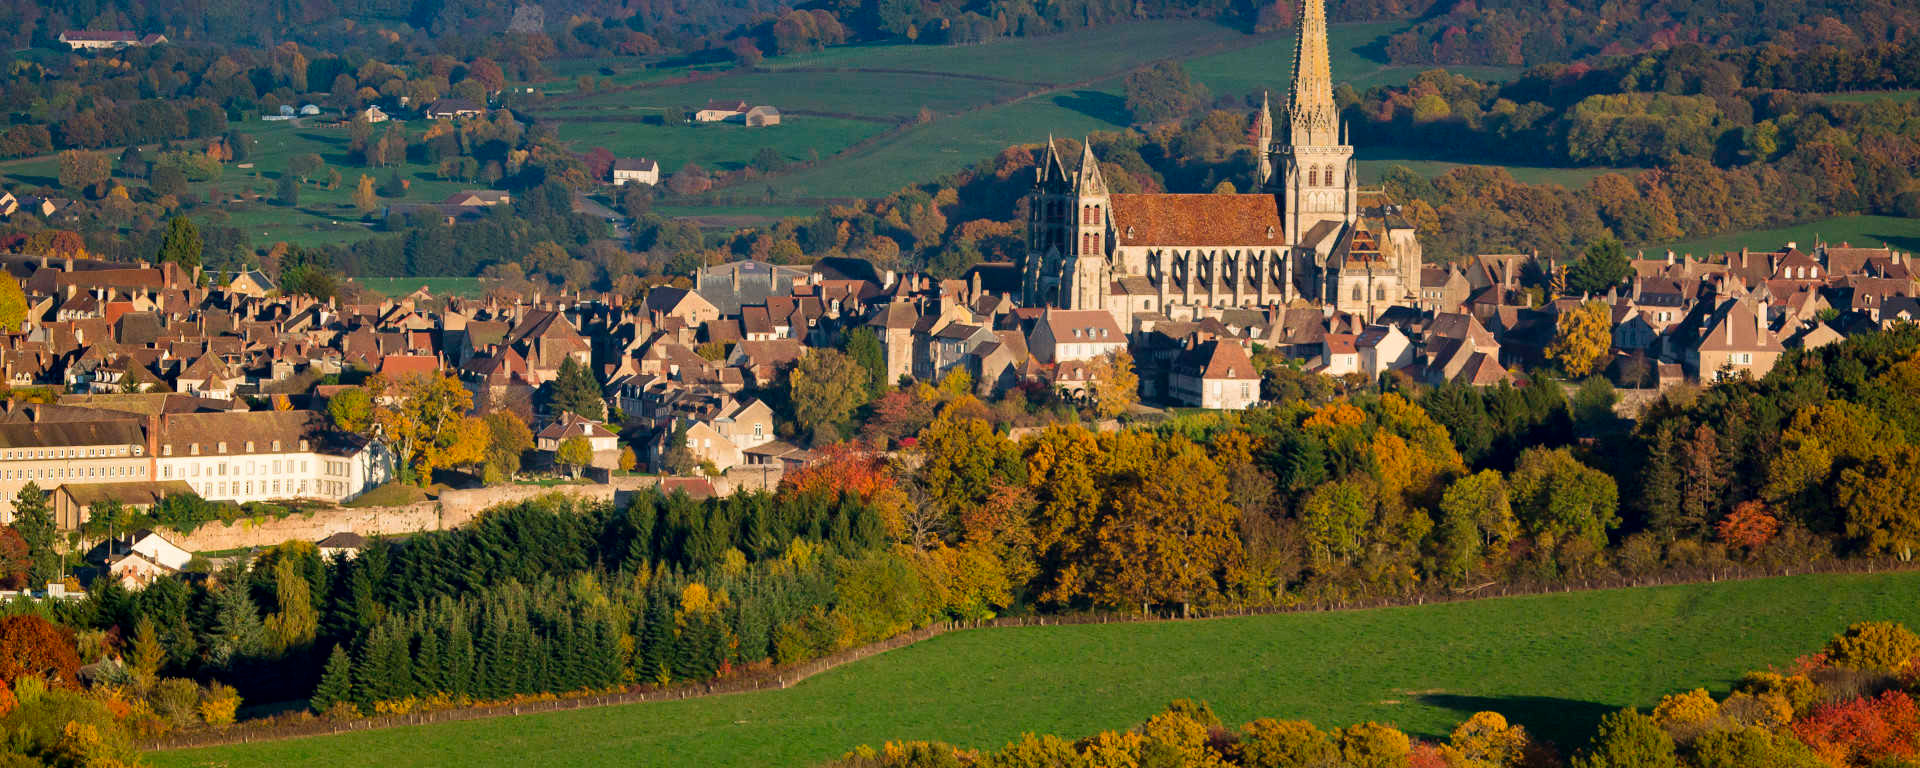 cathedrale-autun